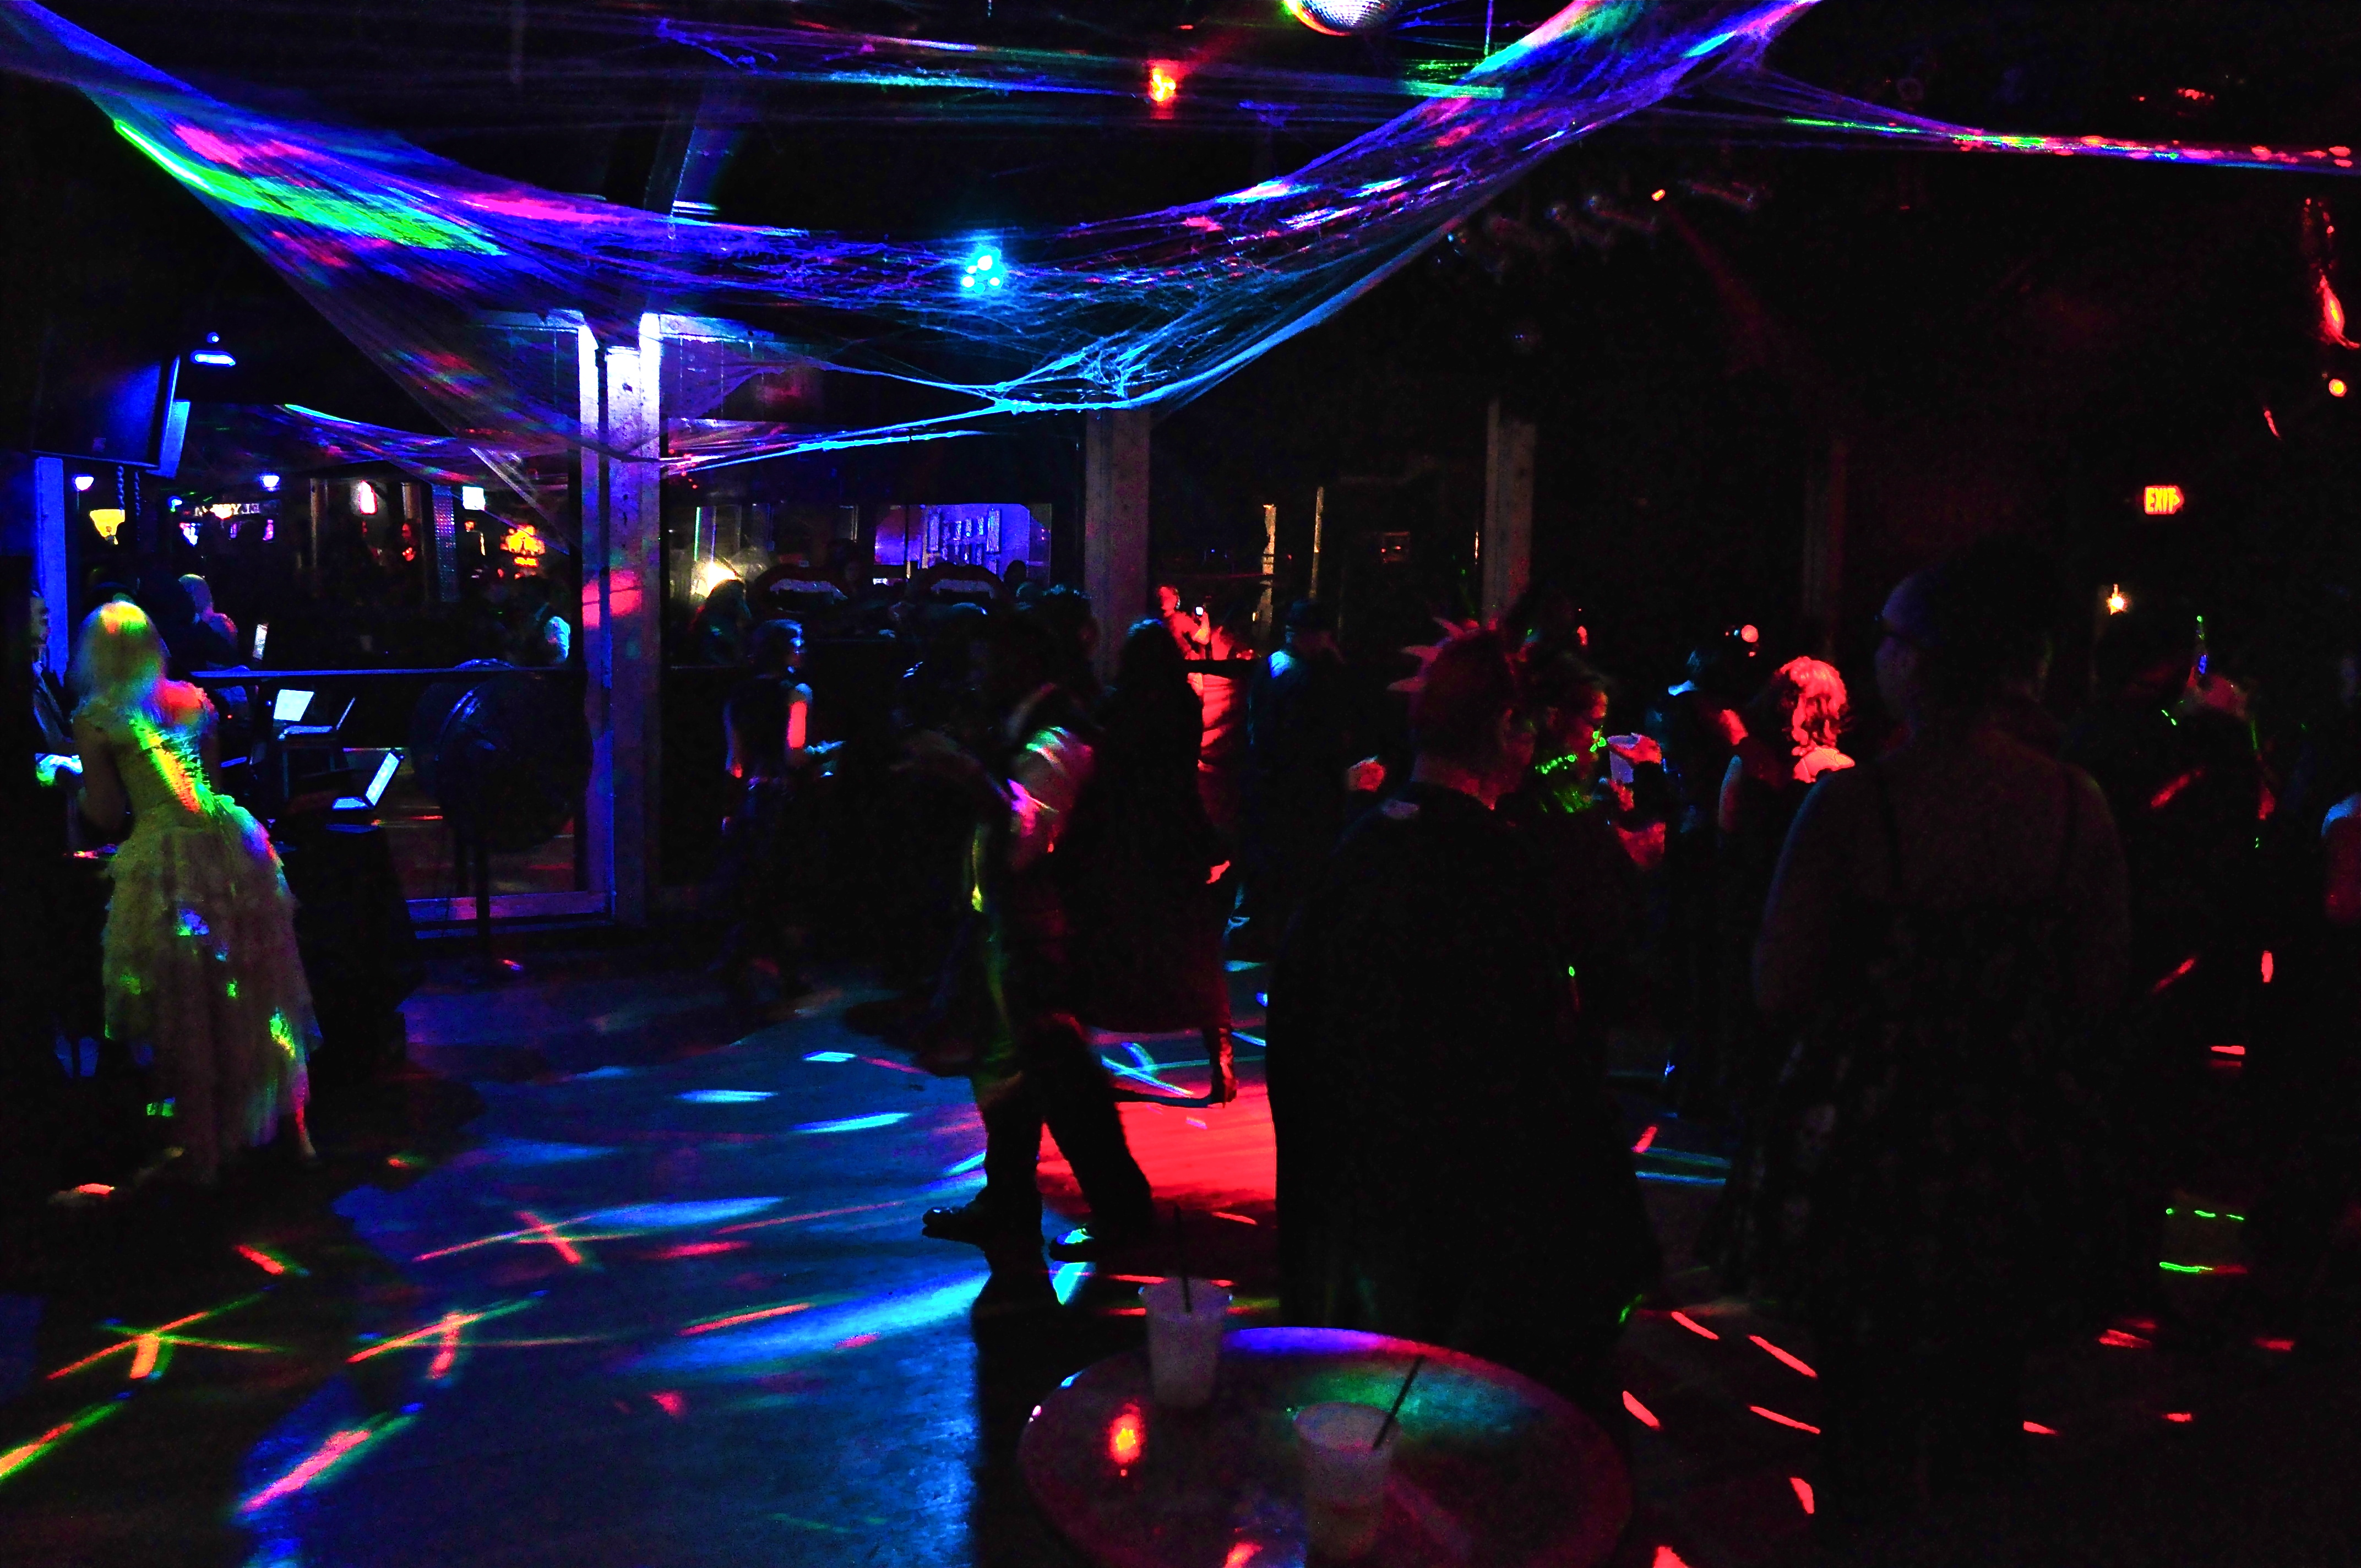 Austinites gather at the disco-lit Elysium on October 19 for their 2nd annual Vampire Ball.